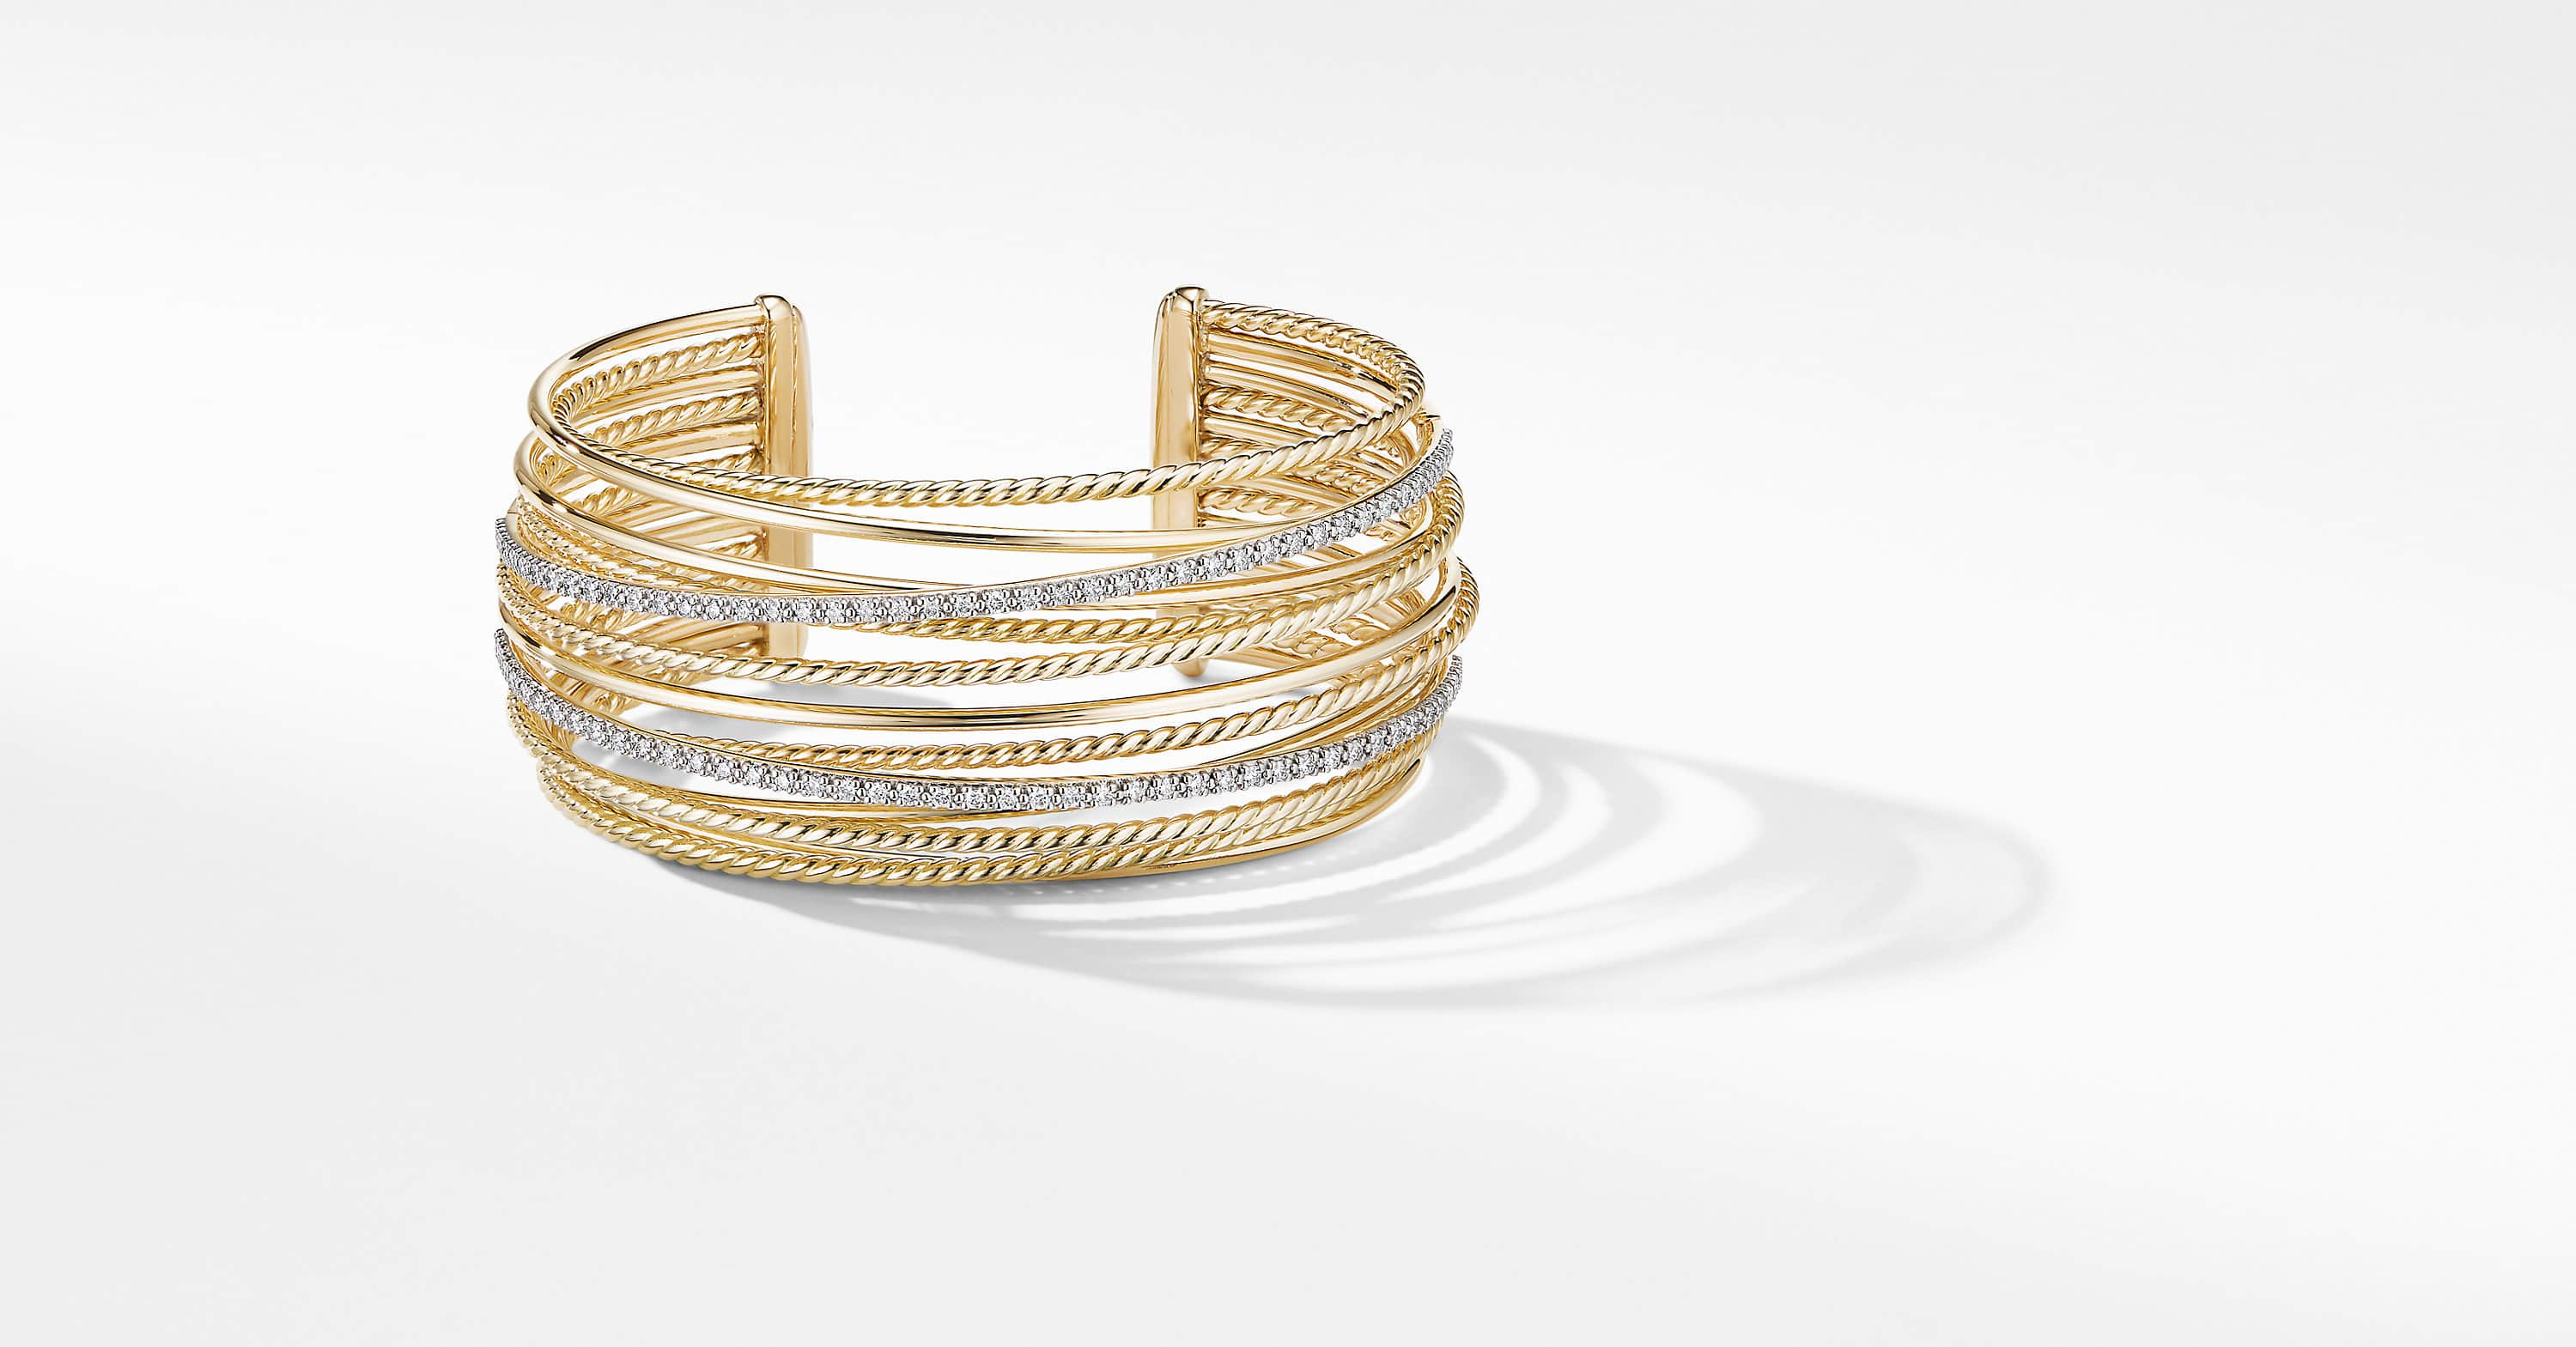 Crossover Cuff Bracelet in 18K Yellow Gold with Diamonds